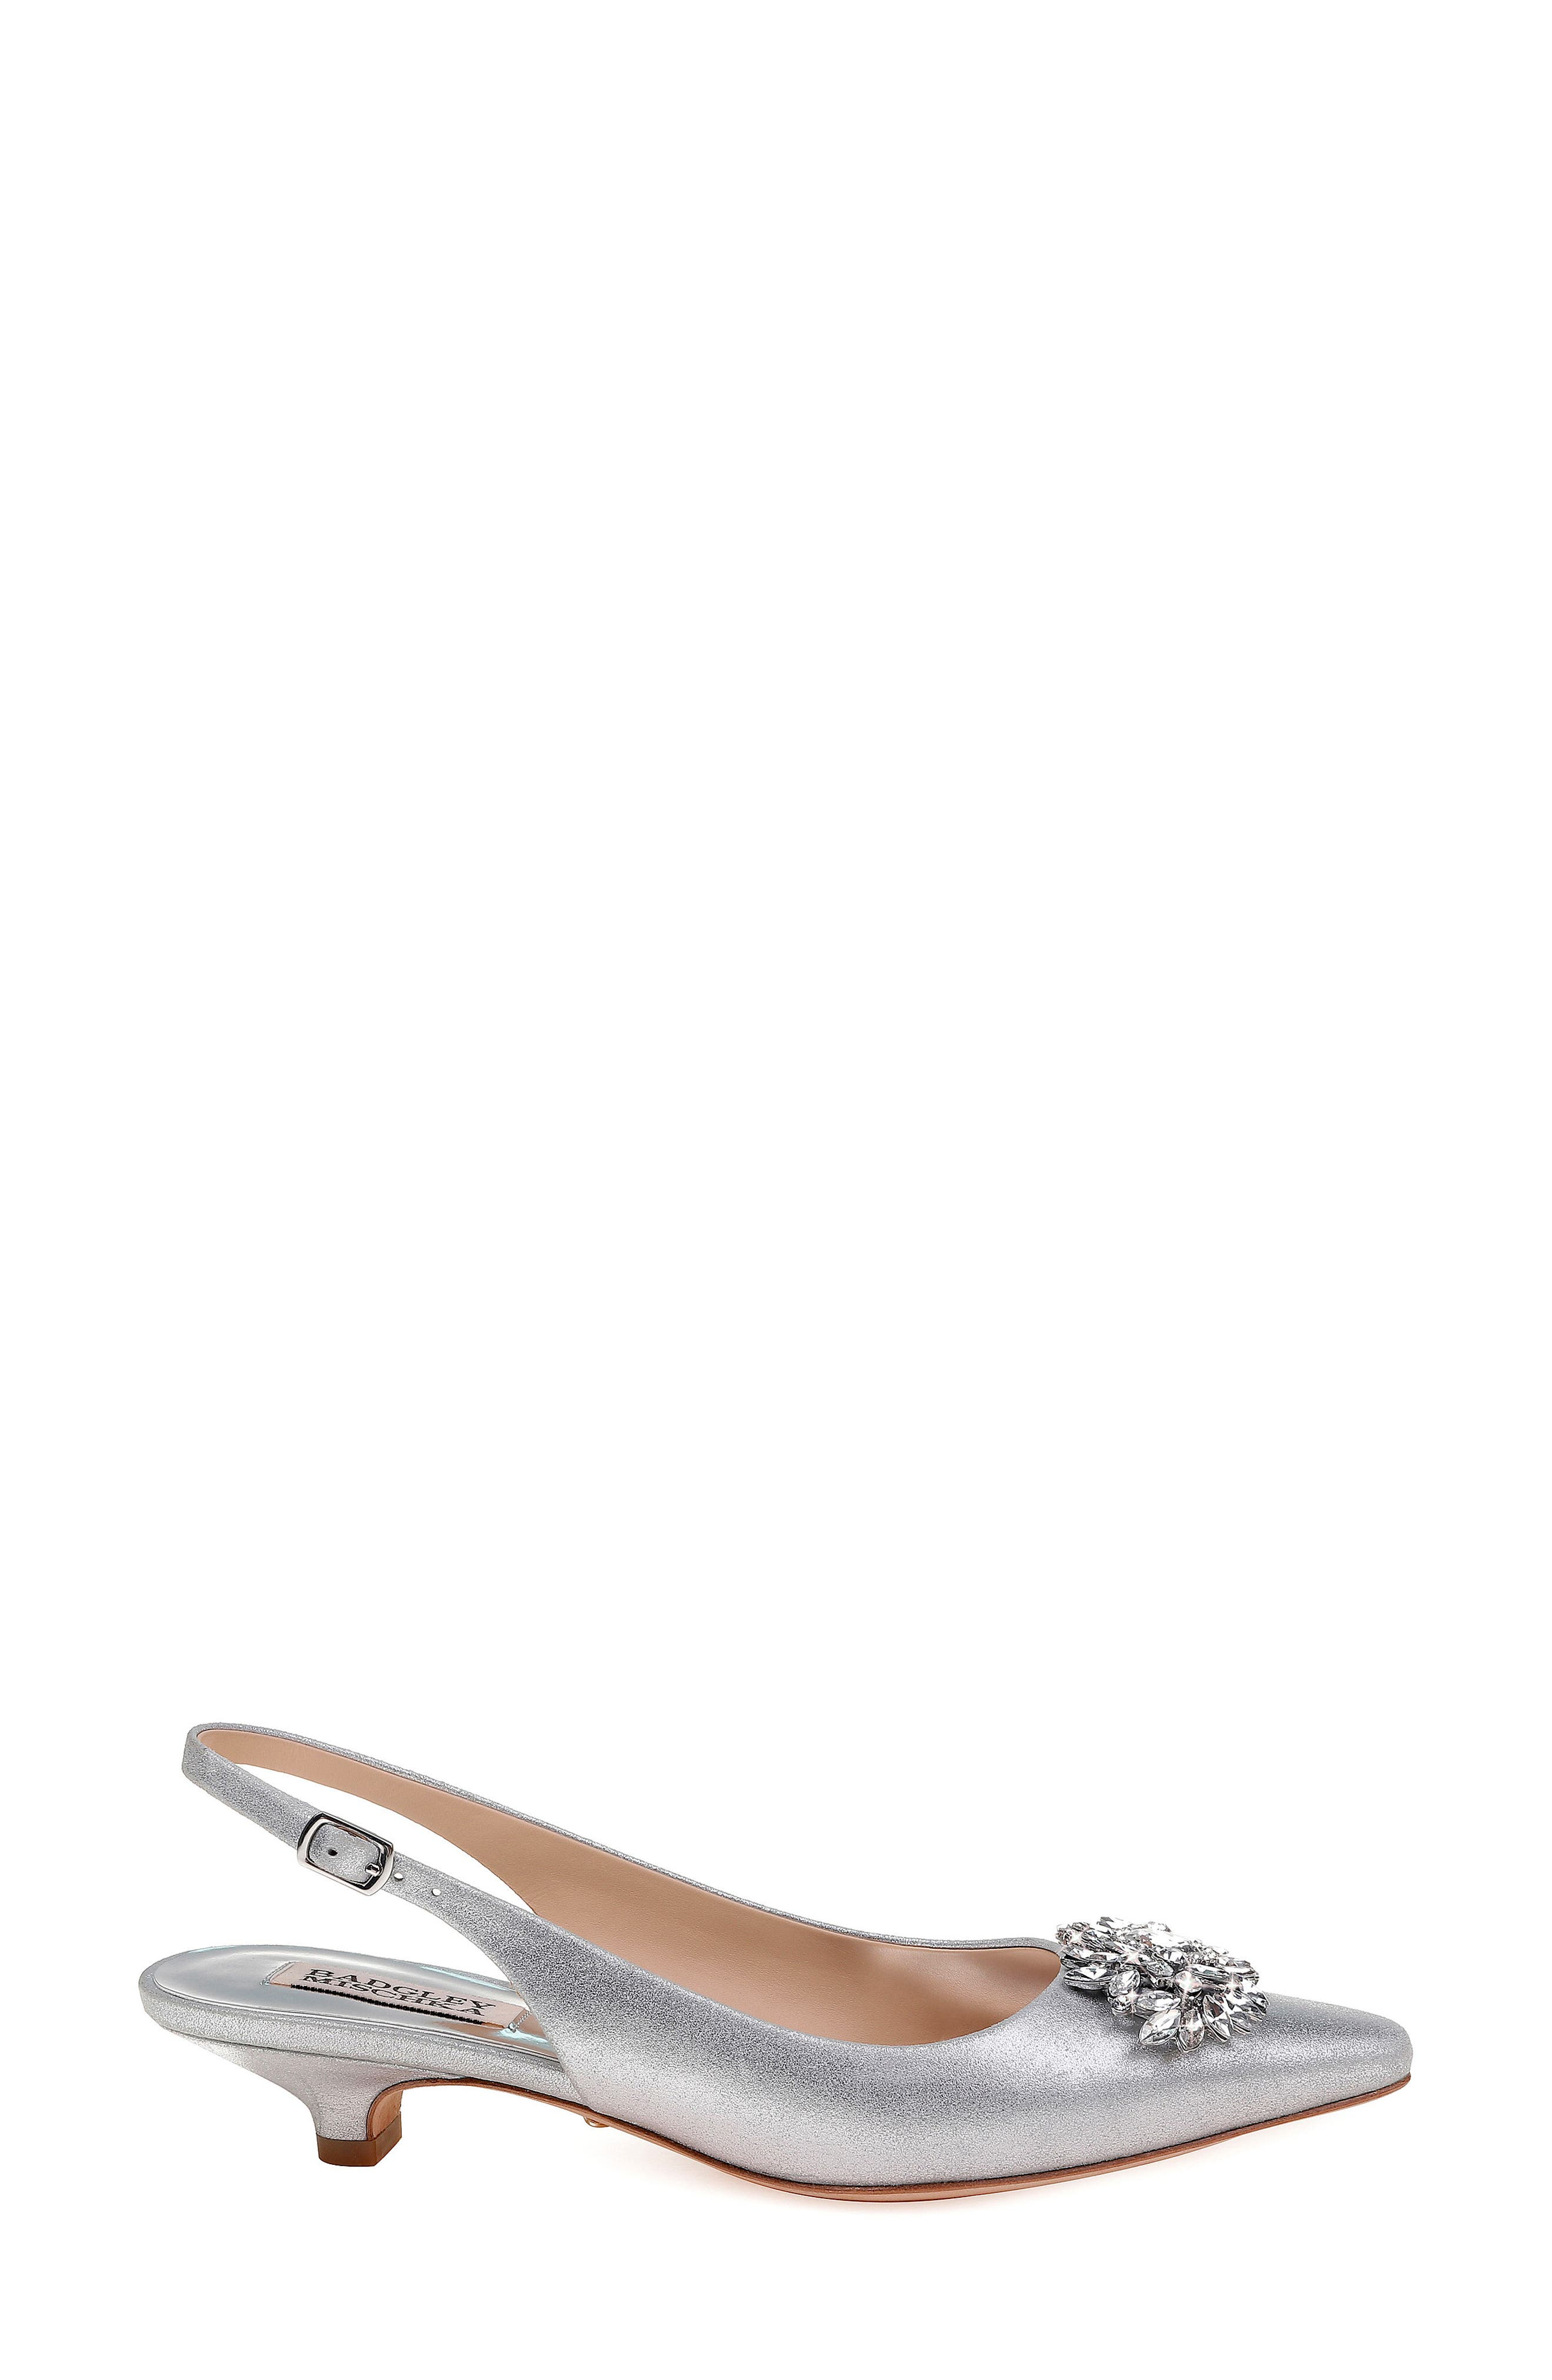 Page Slingback Pump,                             Alternate thumbnail 3, color,                             Silver Metallic Suede